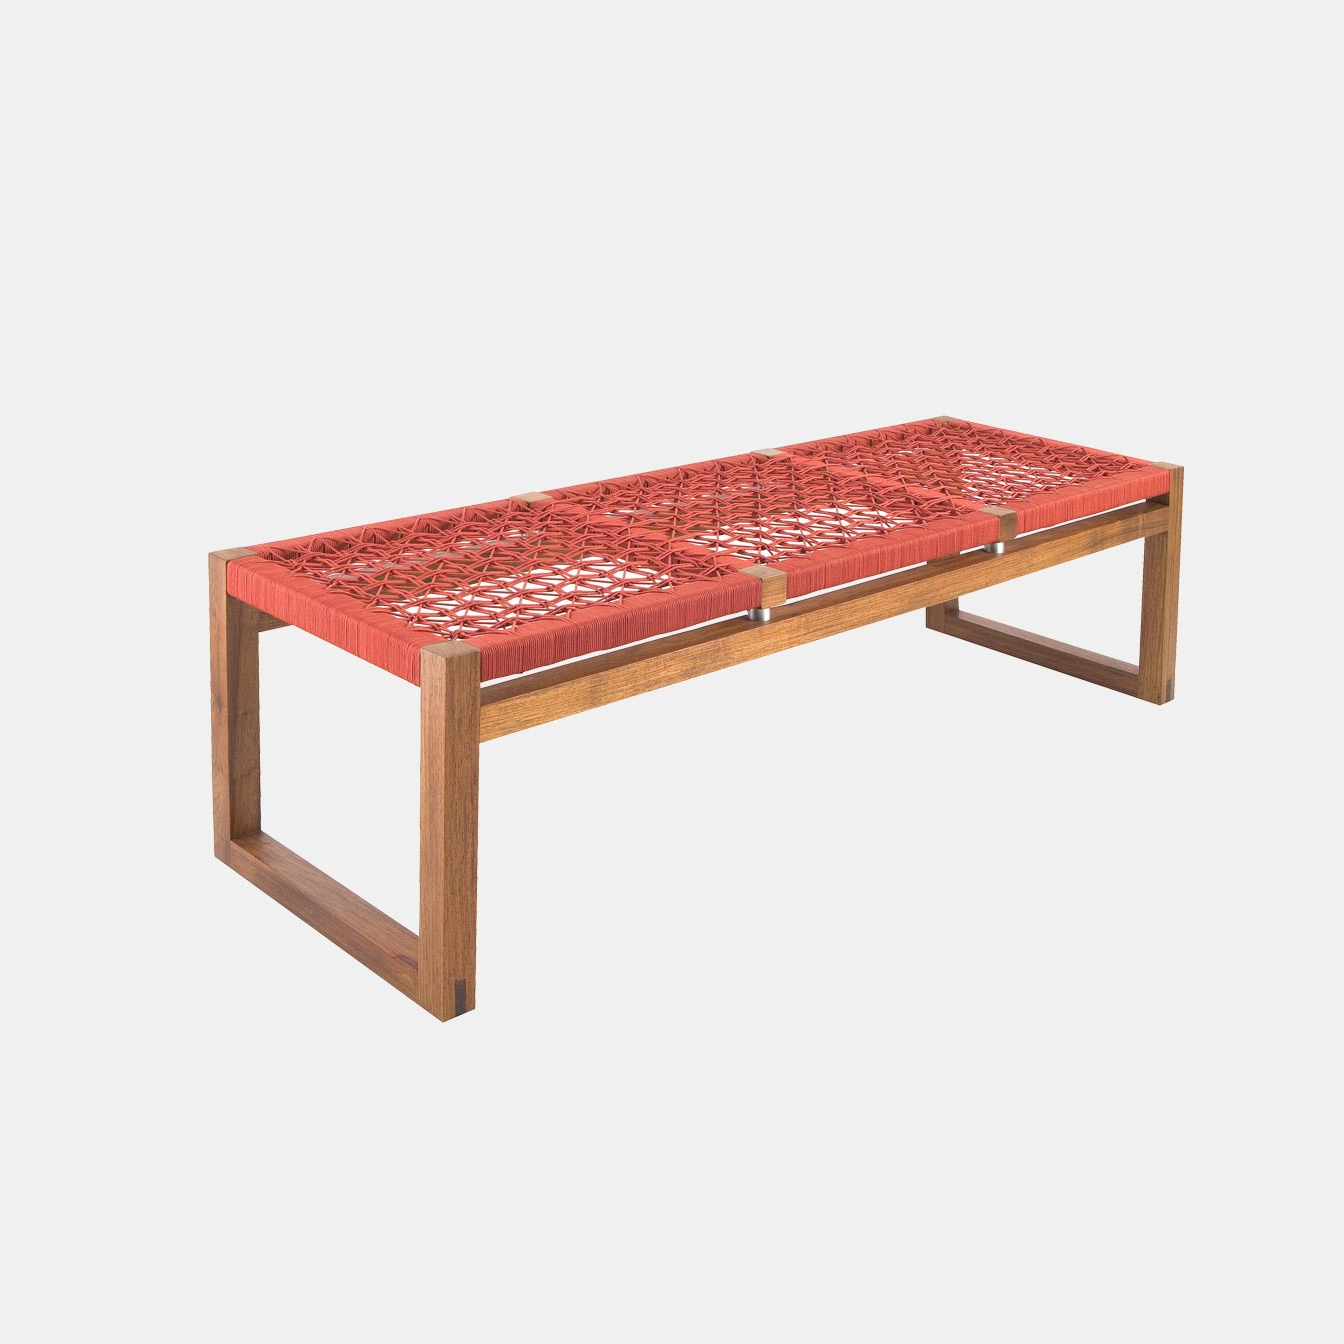 Cube Bench-2 seater by Vogel Design. A solid wooden bench with a customizable weave and cord colors and different timber and stain options. Shown here in vibrant red cross hatch weave.